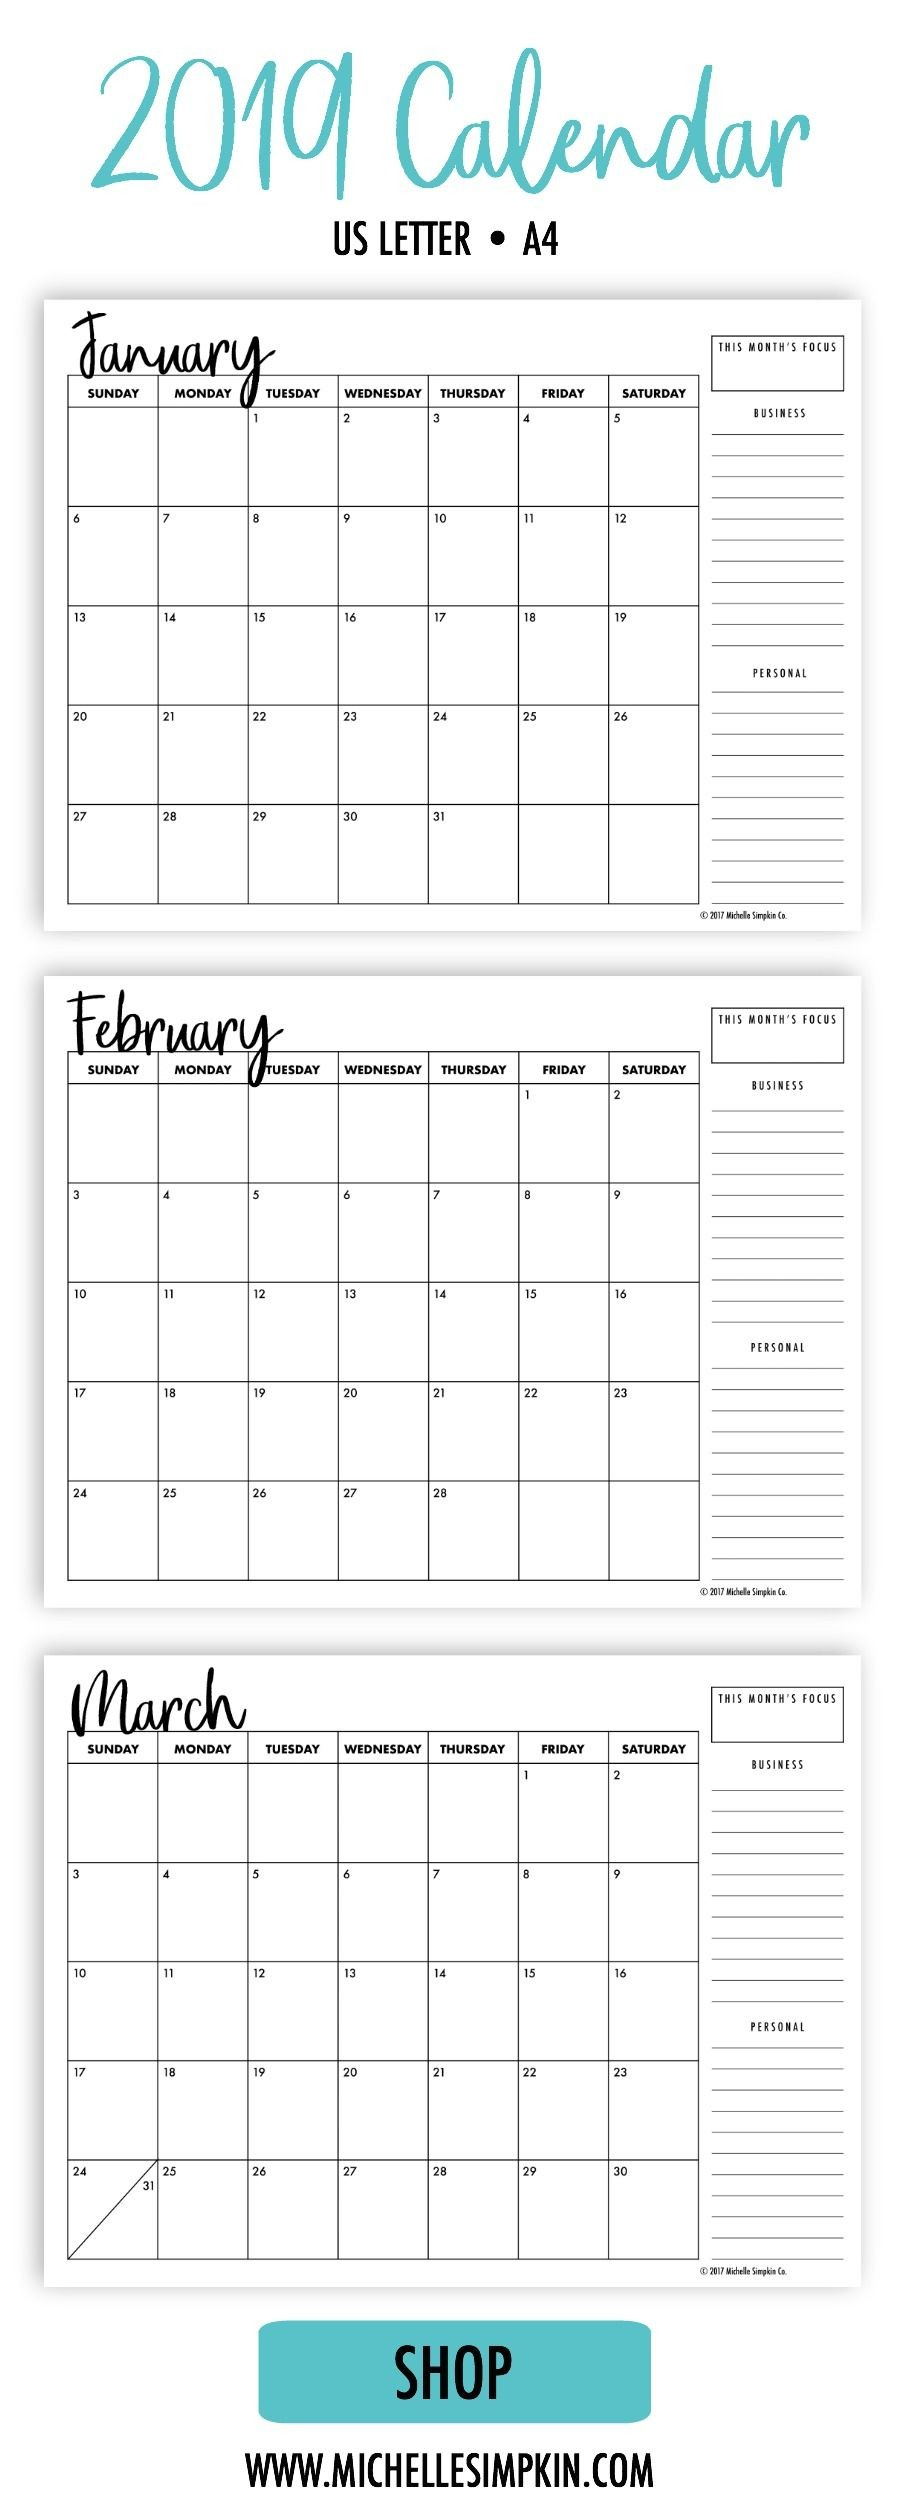 2019 Calendar A simple minimalist design to help you organize your life and business Includes both Monday and Sunday starts